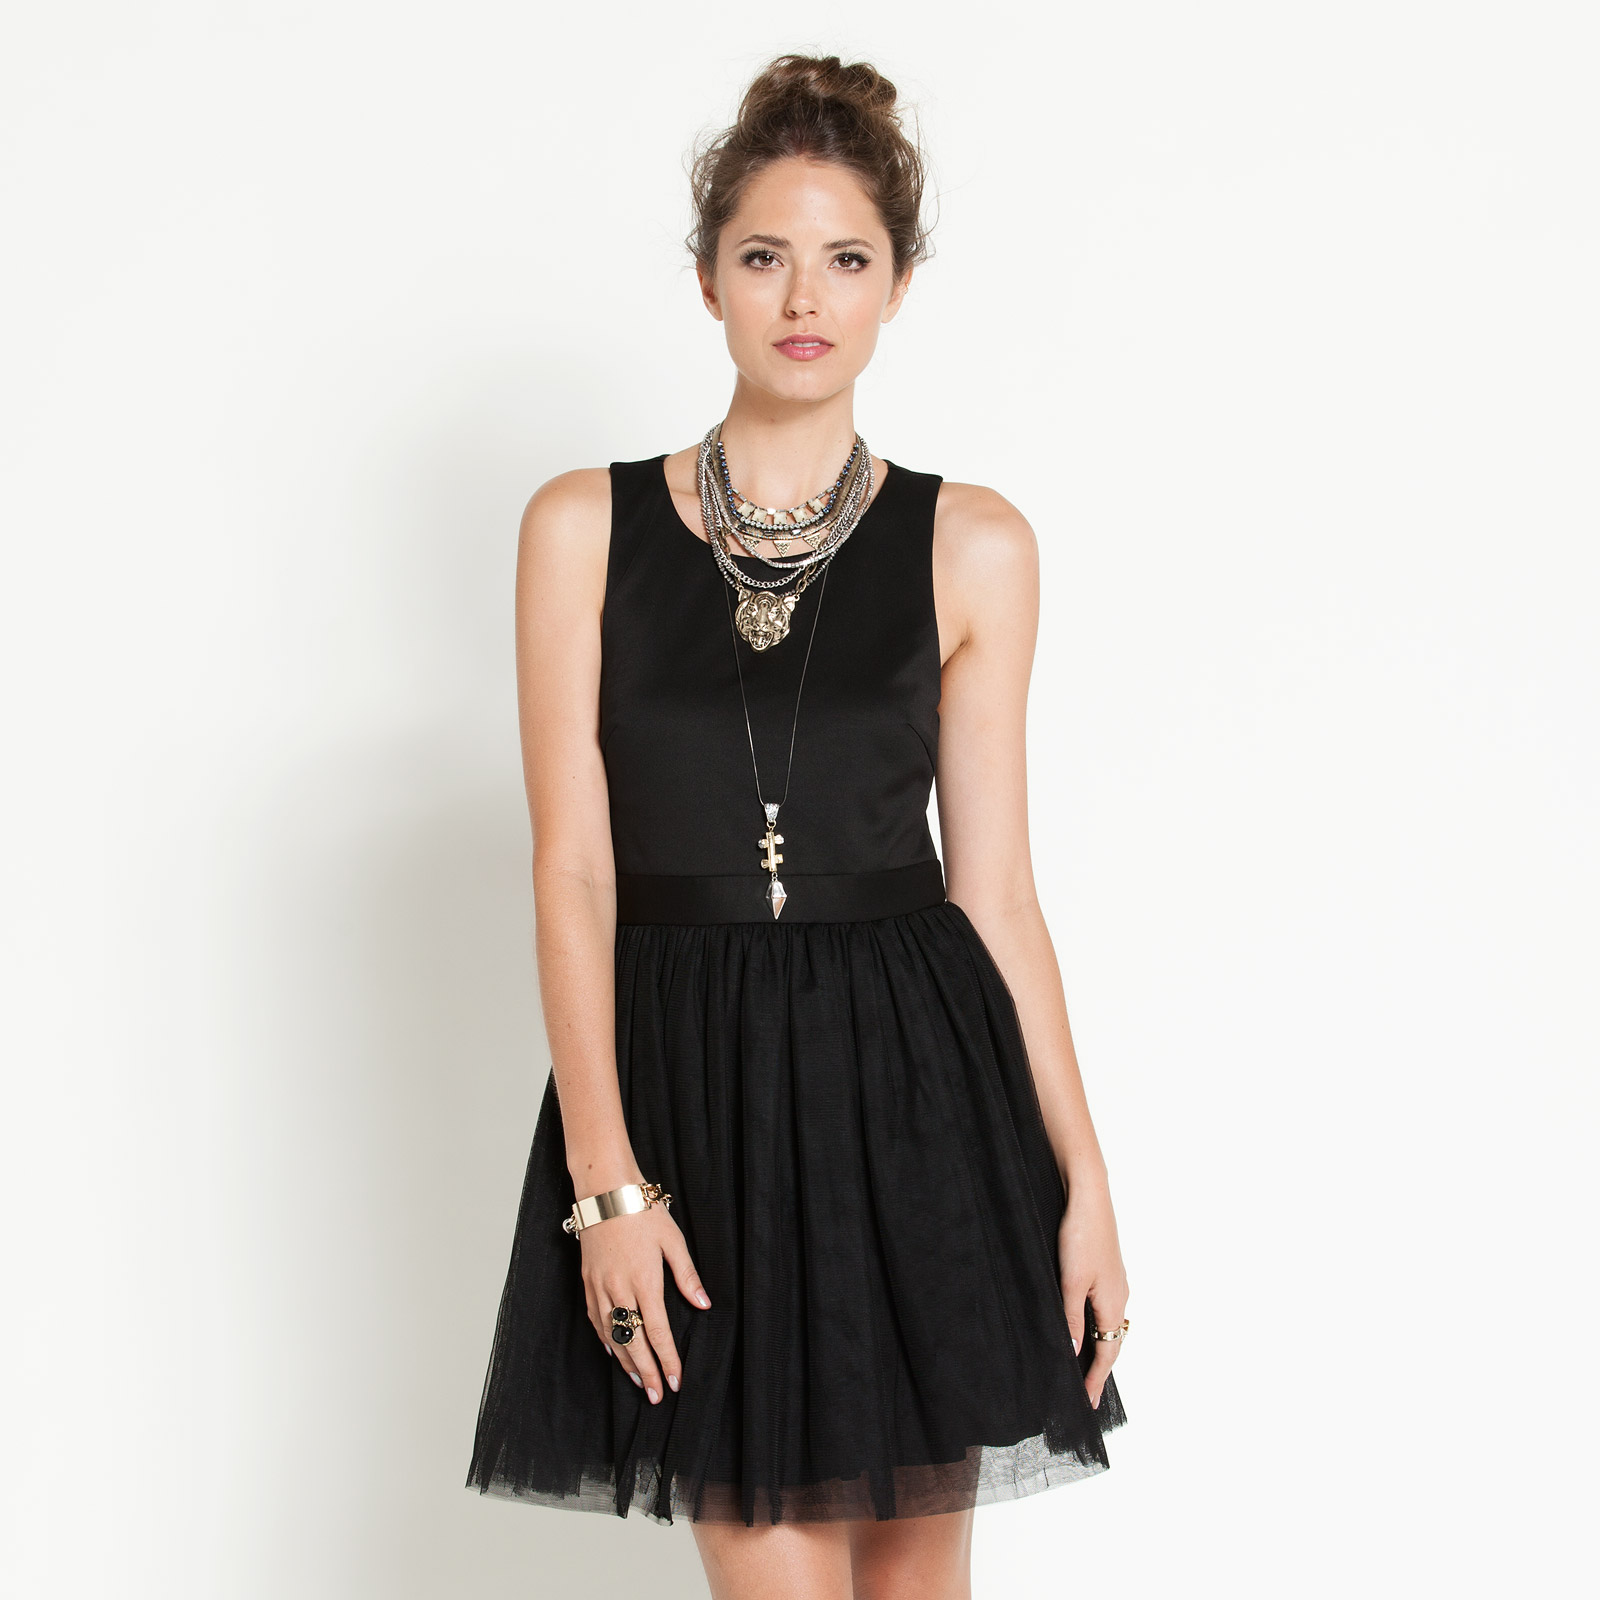 Formal dresses for teens 4 To 10 11 12 13 14 Years Old